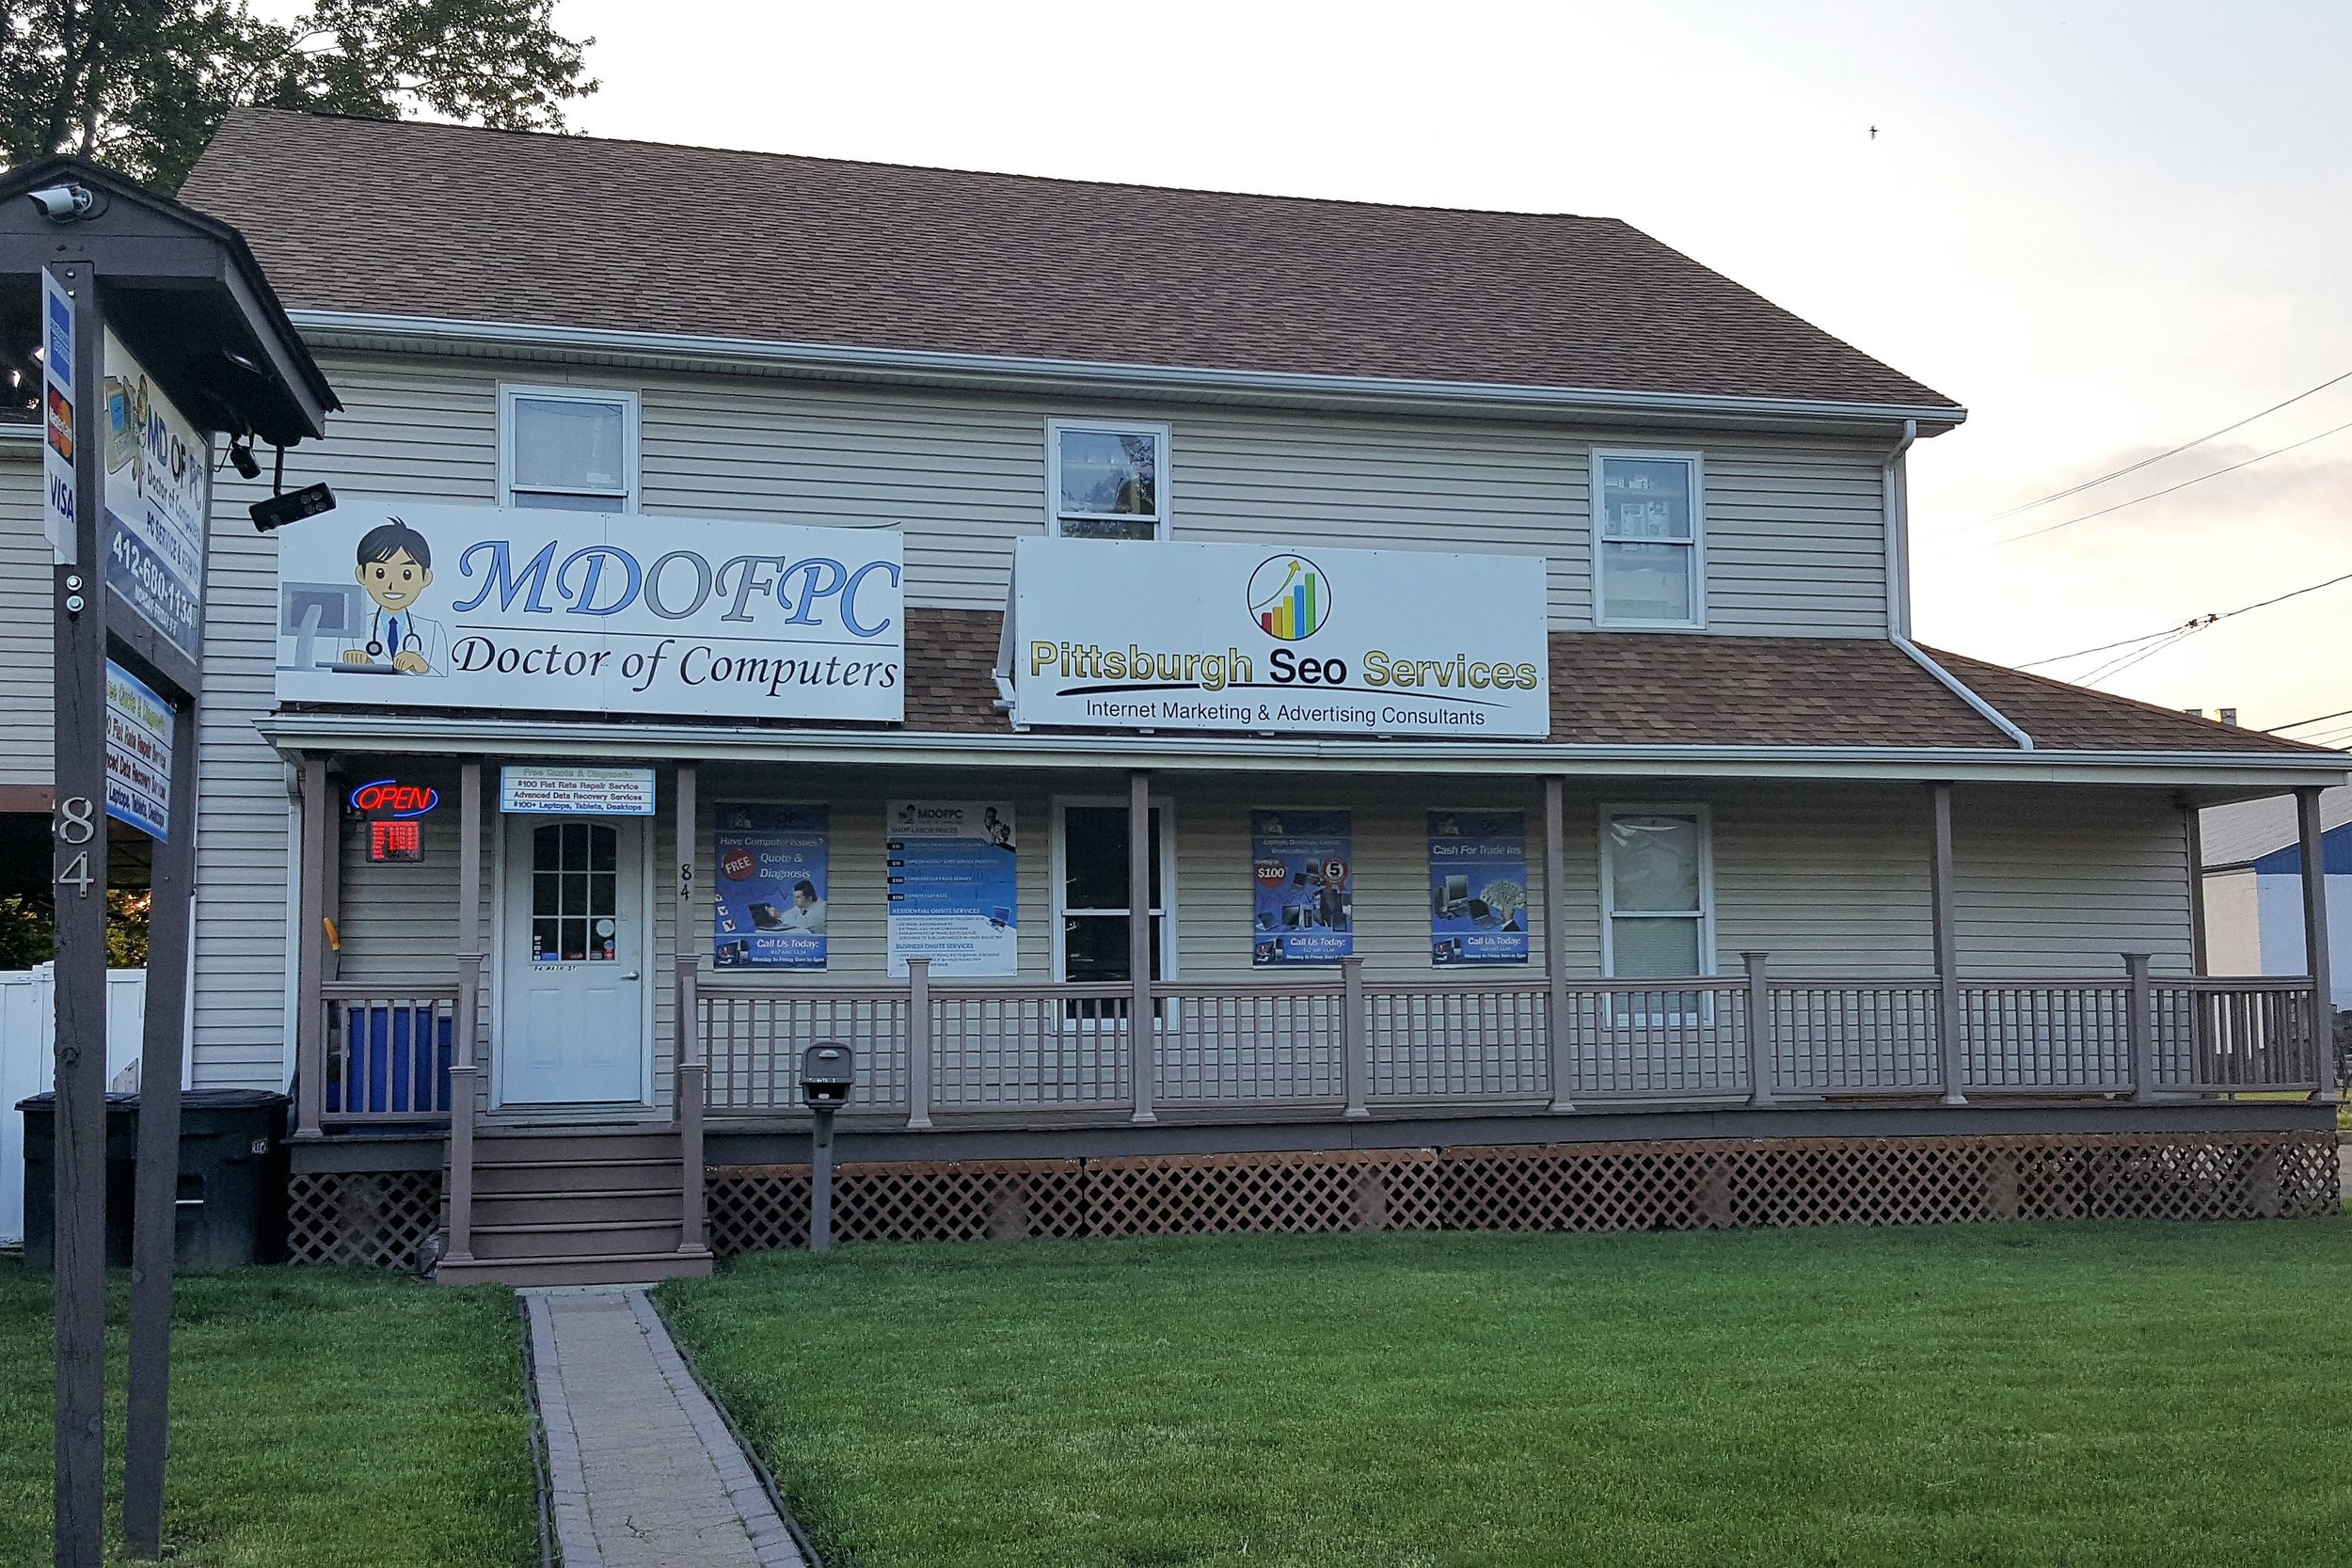 MDofPCDoctor of Computers - 84 Main St, (412) 680-1134